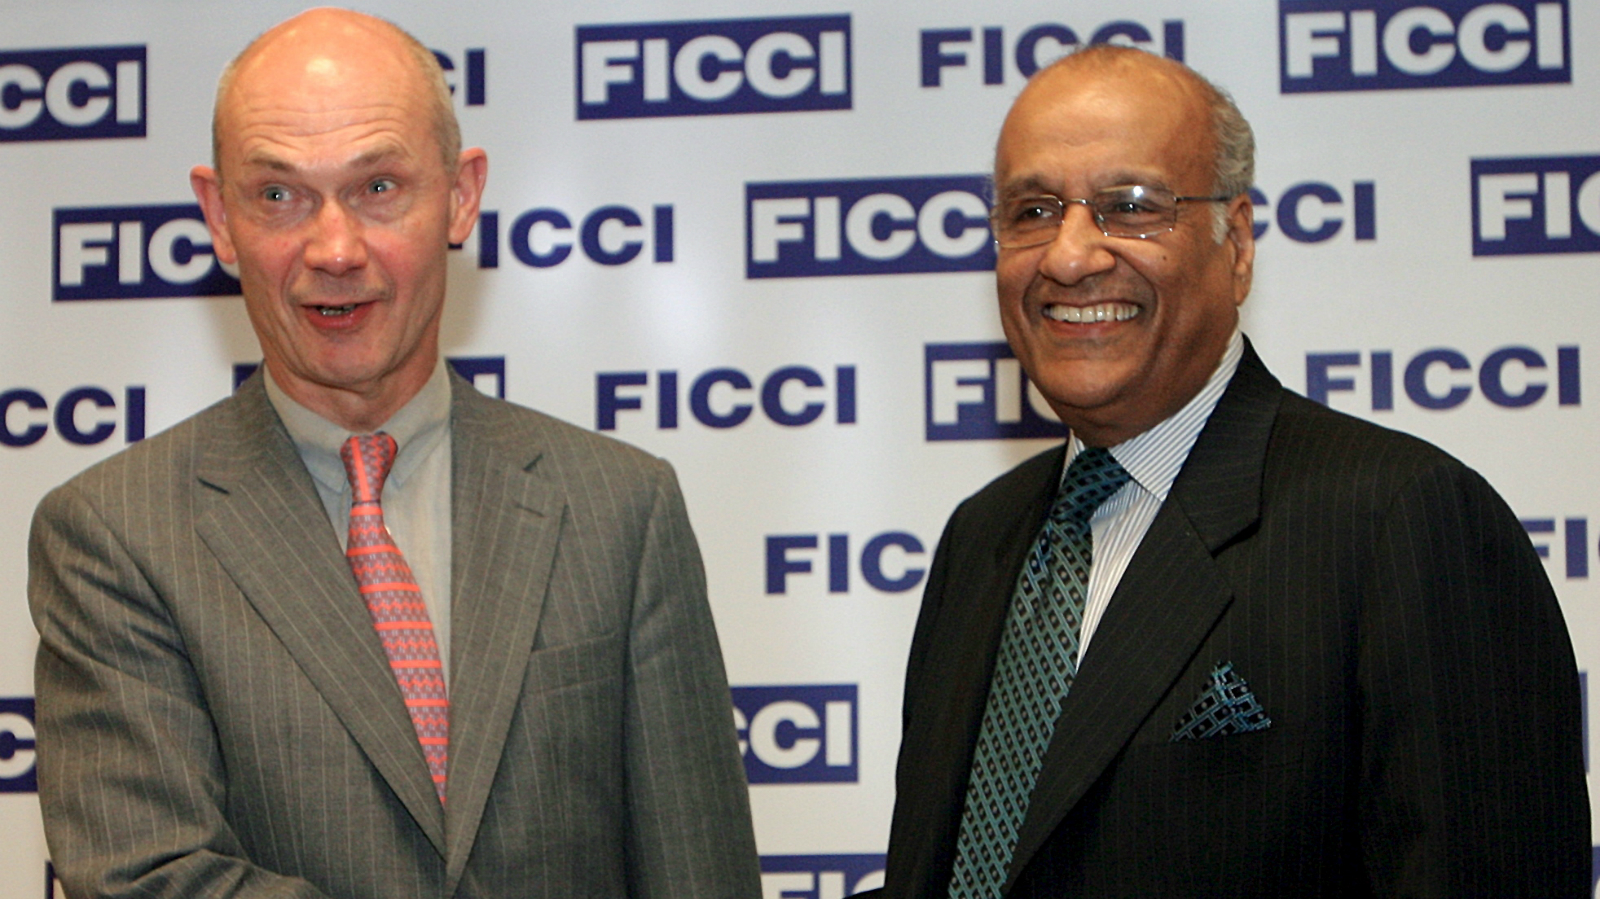 The Director General of the World Trade Organisation, Pascal Lamy (L) shakes hand with Saroj Kumar Poddar, President of the Federation of Indian Chambers of Commerce and Industry (FICCI) before a luncheon address in New Delhi, India on Wednesday, 05 April 2006. Pascal Lamy arrived in India on Wednesday on a two-day visit to hold talks with the government.